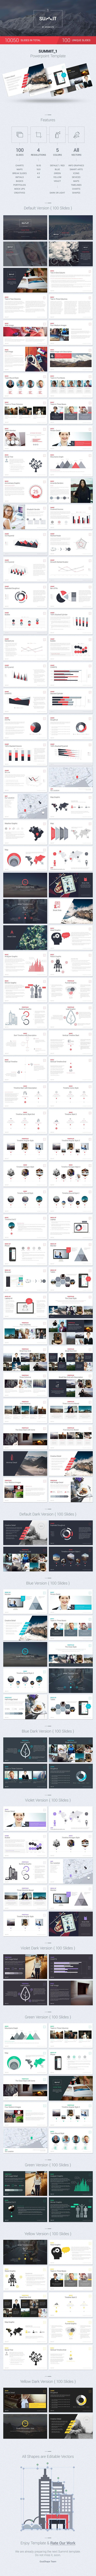 Summit 1 PowerPoint Template (PowerPoint Templates) 01 Summit Cover #Powerpoint #Powerpoint_Template #Presentation